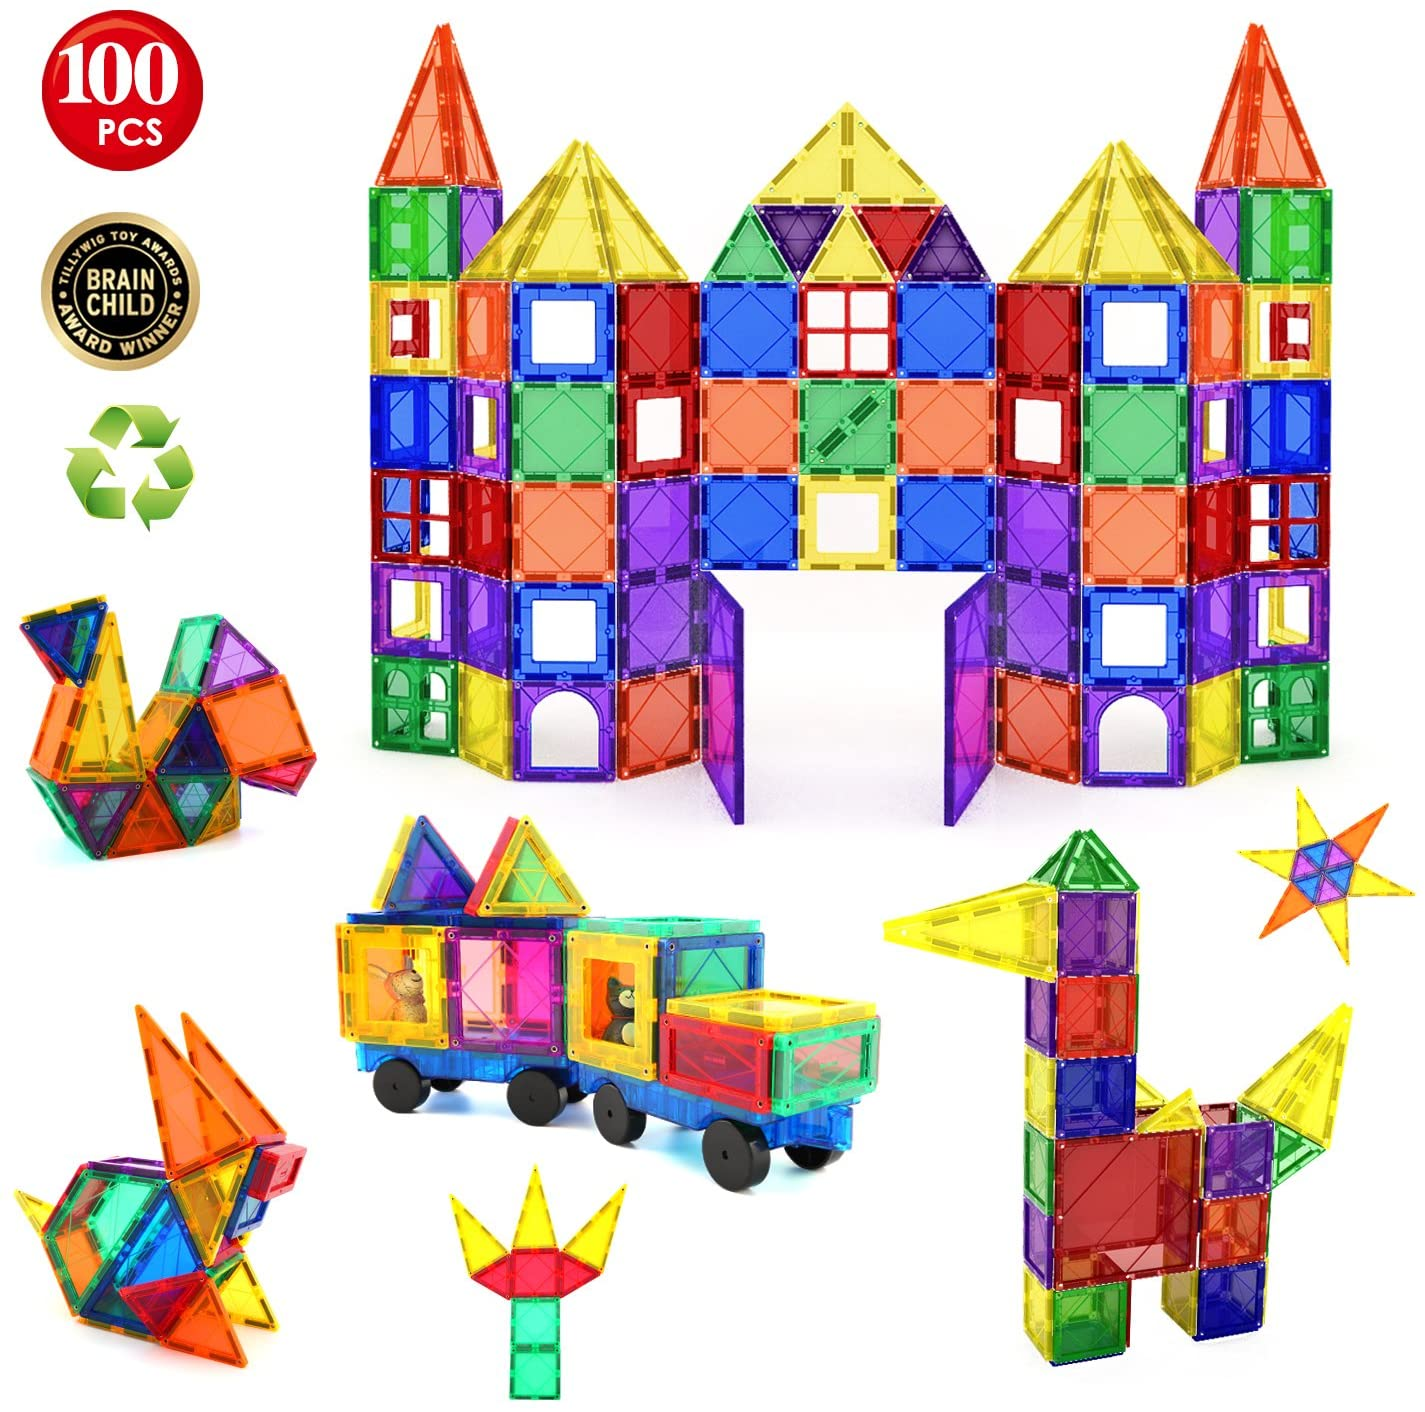 Top 10 Best Magnetic Blocks in 2021 Reviews